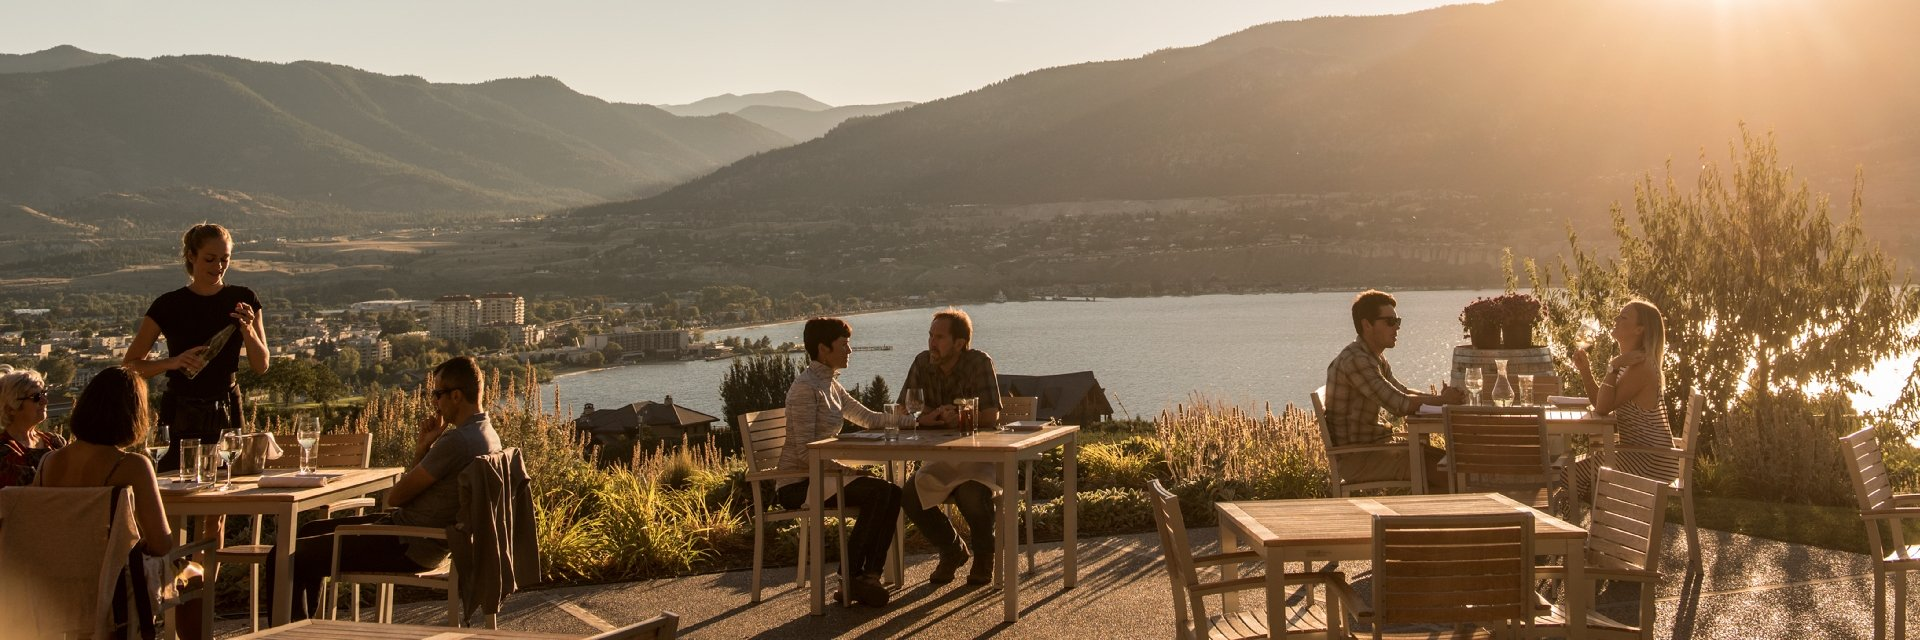 Patrons of The Vanilla Pod Restaurant at Poplar Grove winery enjoy dining on the patio with views of Okanagan Lake and Penticton, BC.